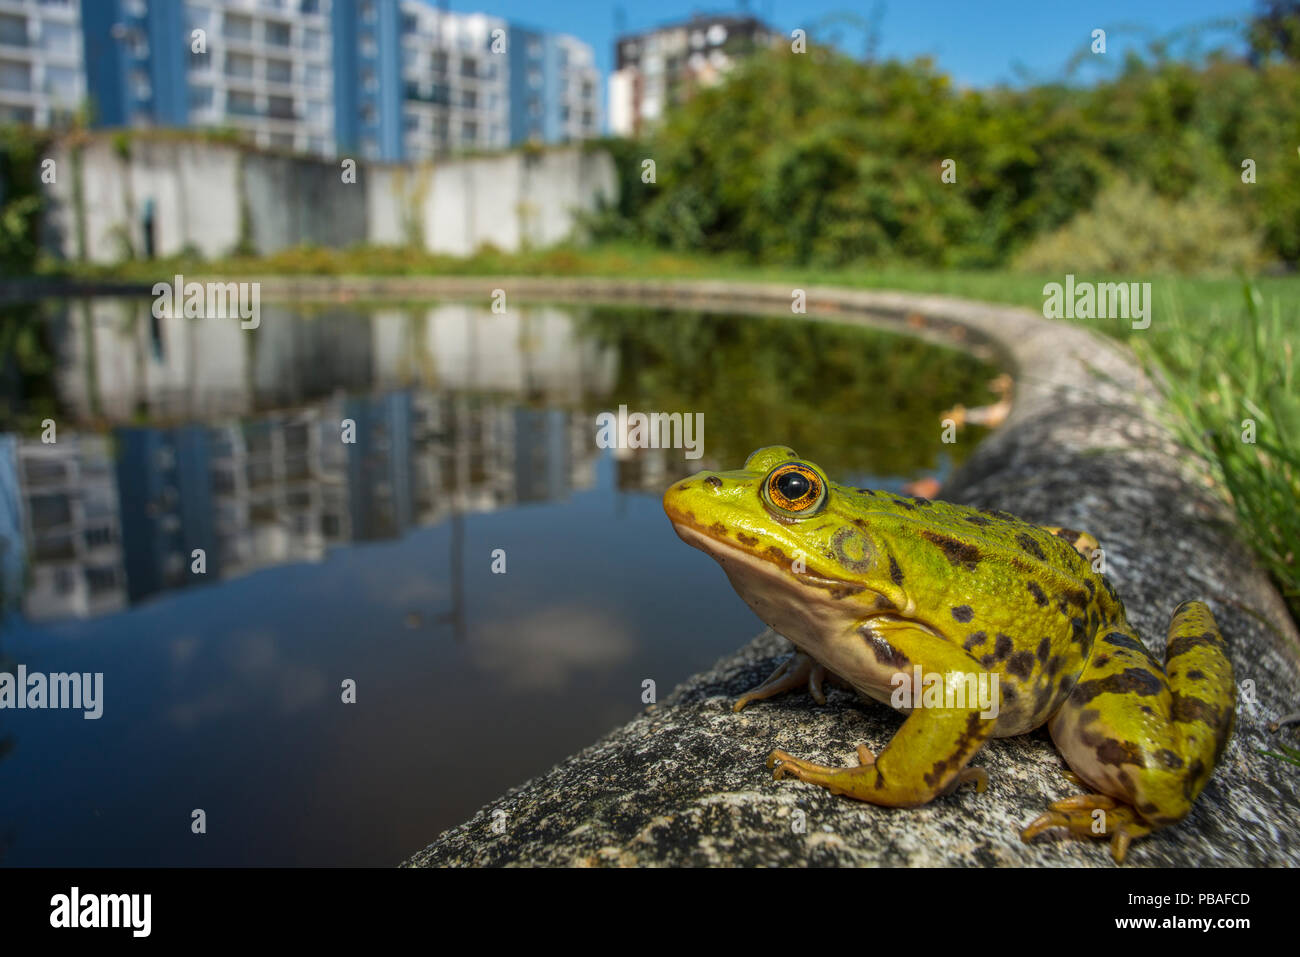 European edible frog (Rana esculenta) in urban park, next to pond with buildings in distance, Grenoble, France, May. - Stock Image